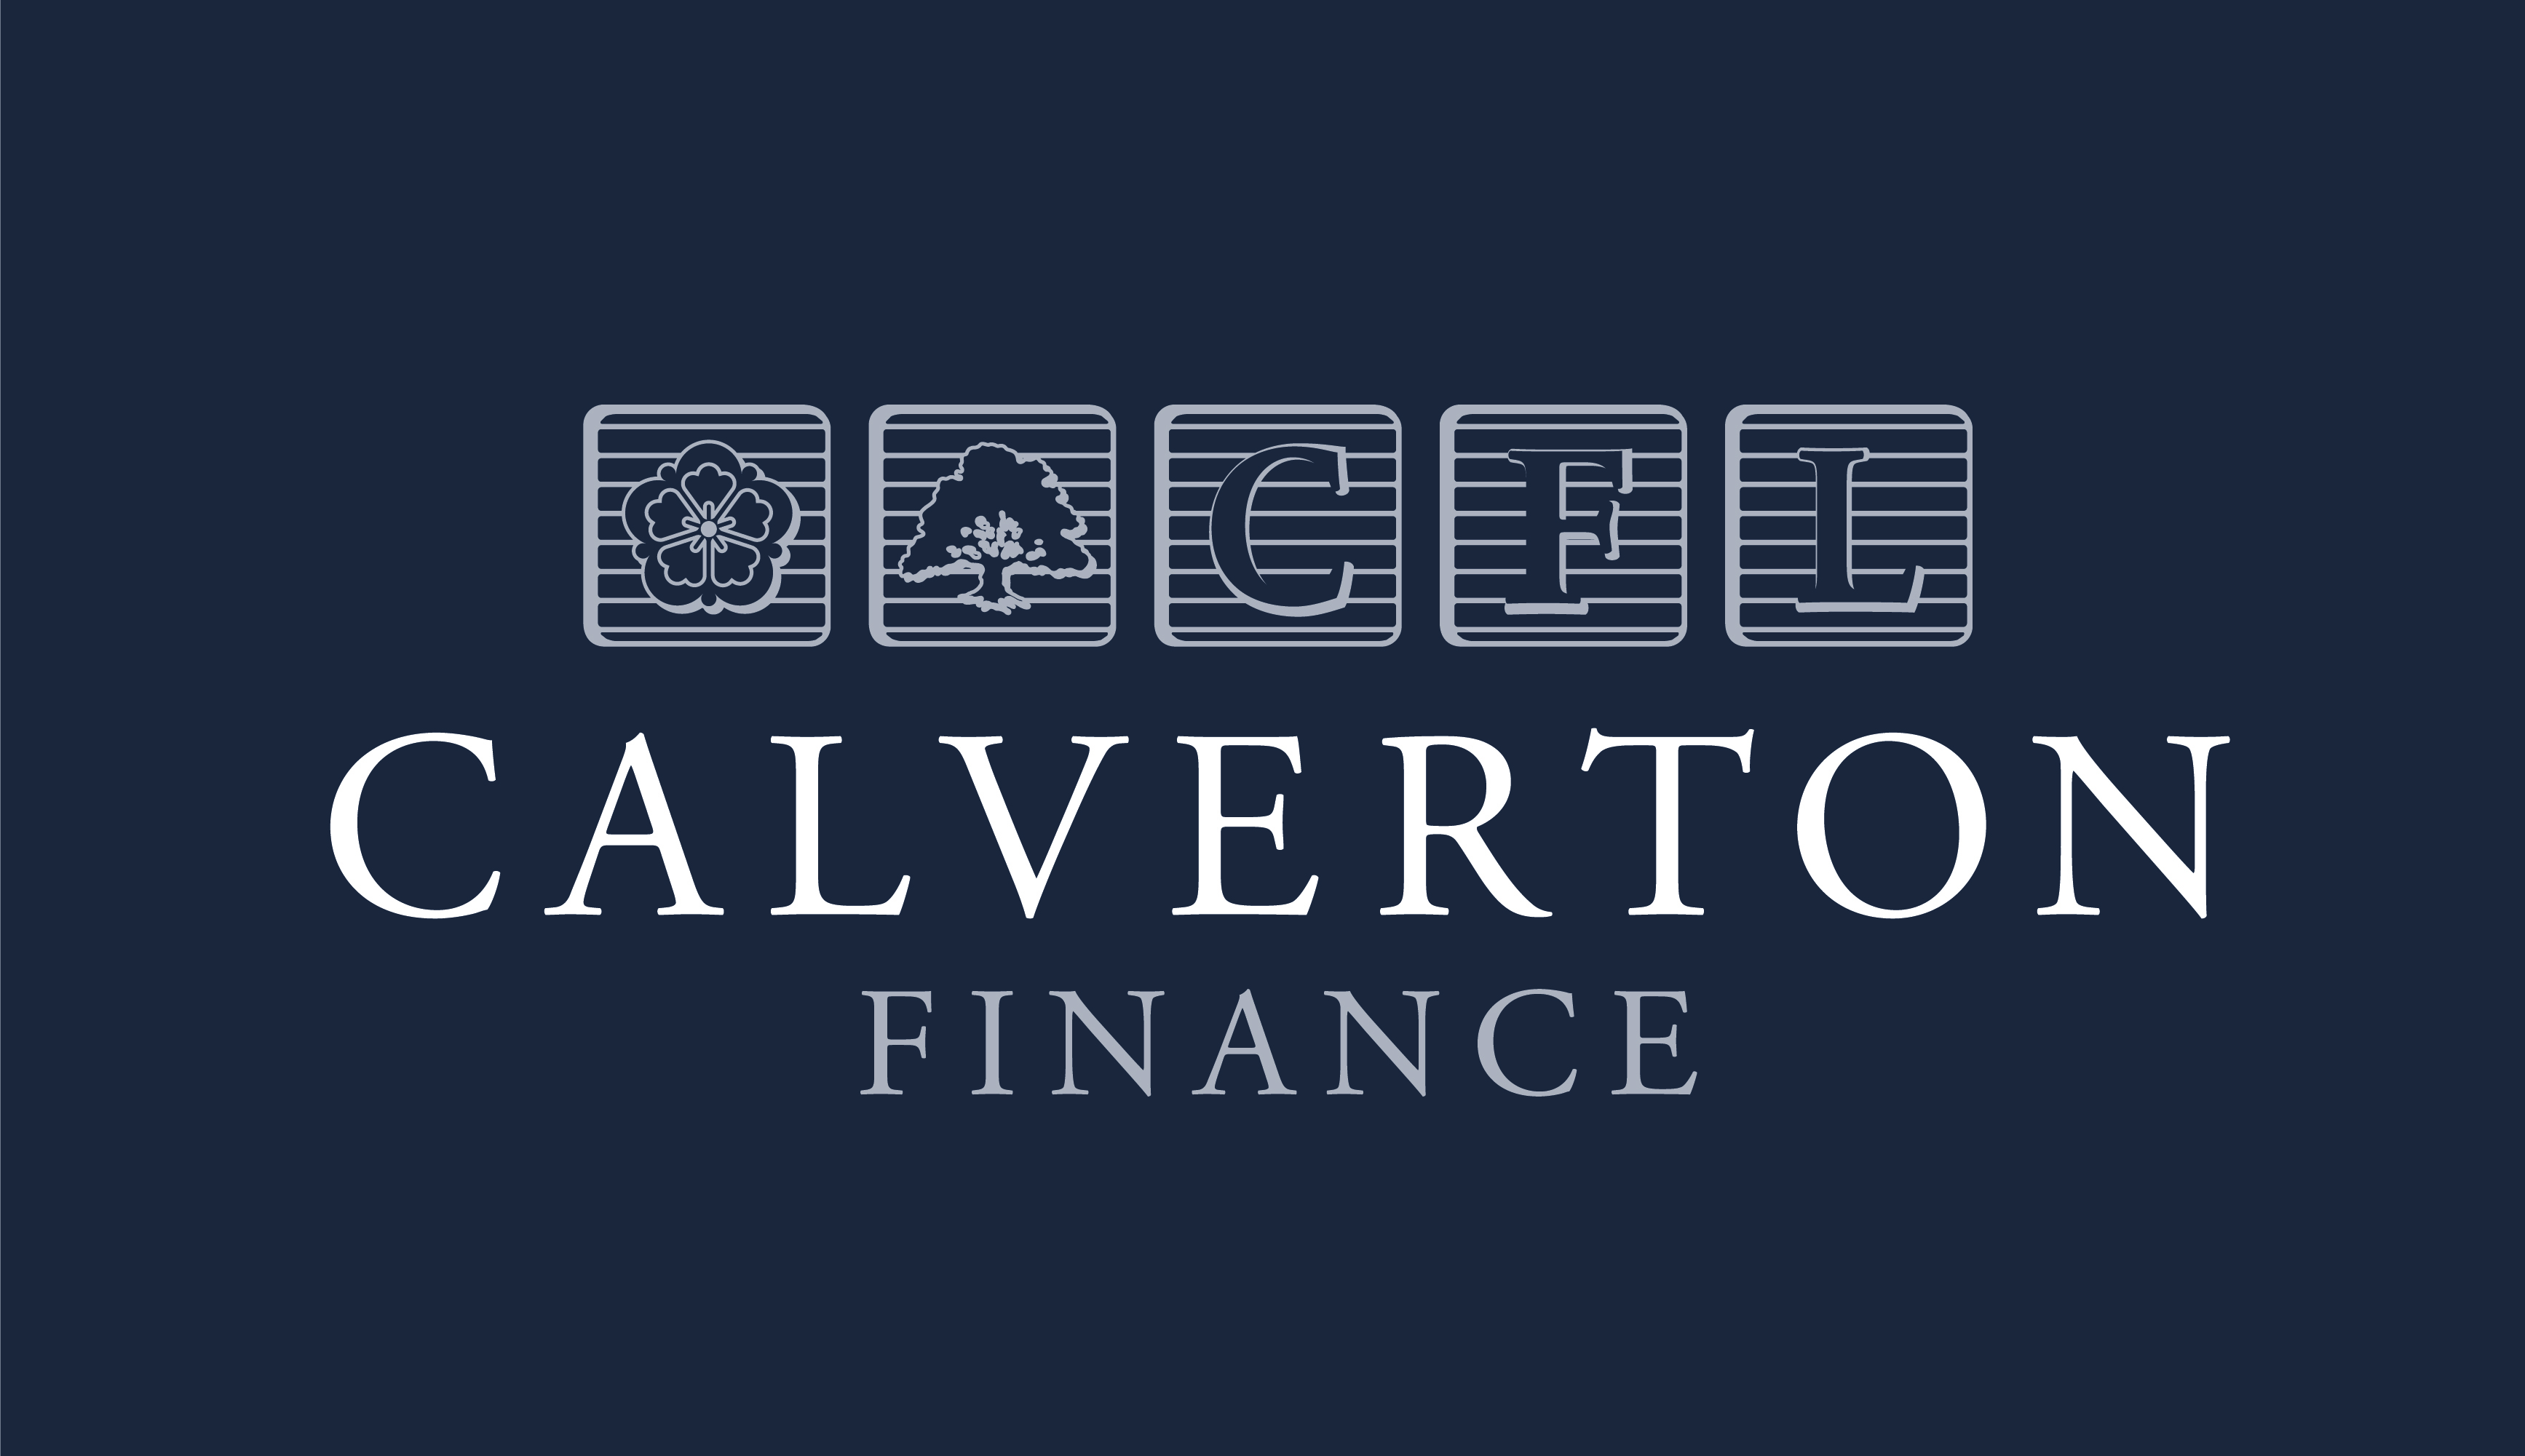 Calverton Finance